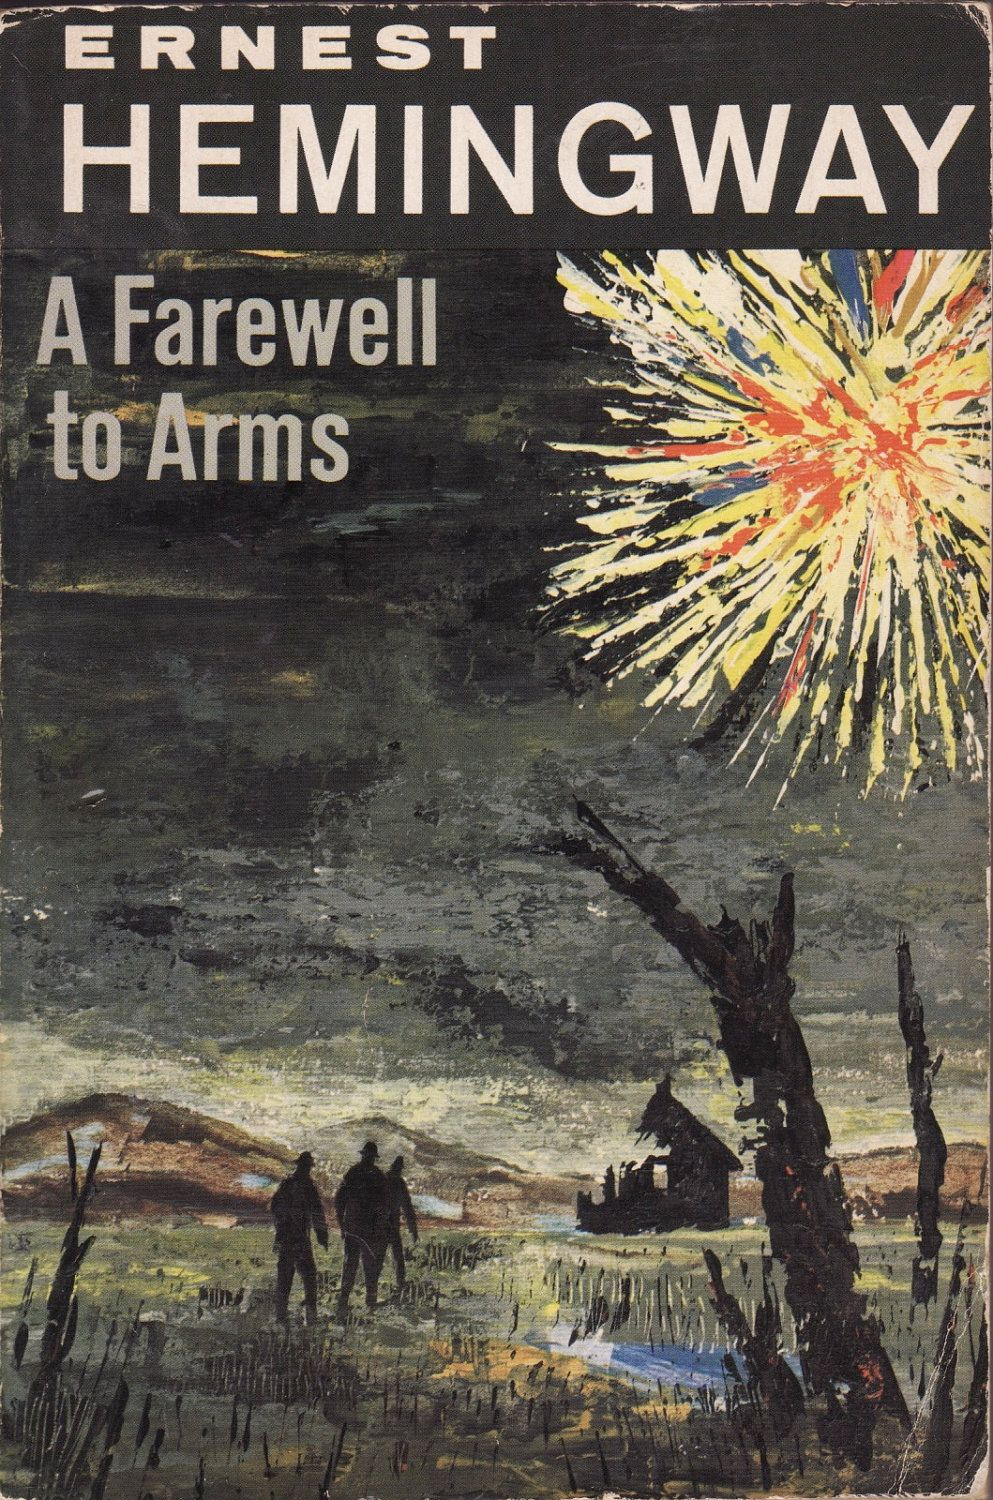 a farewell to arms 3 Free summary and analysis of book 3, chapter 25 in ernest hemingway's a  farewell to arms that won't make you snore we promise.